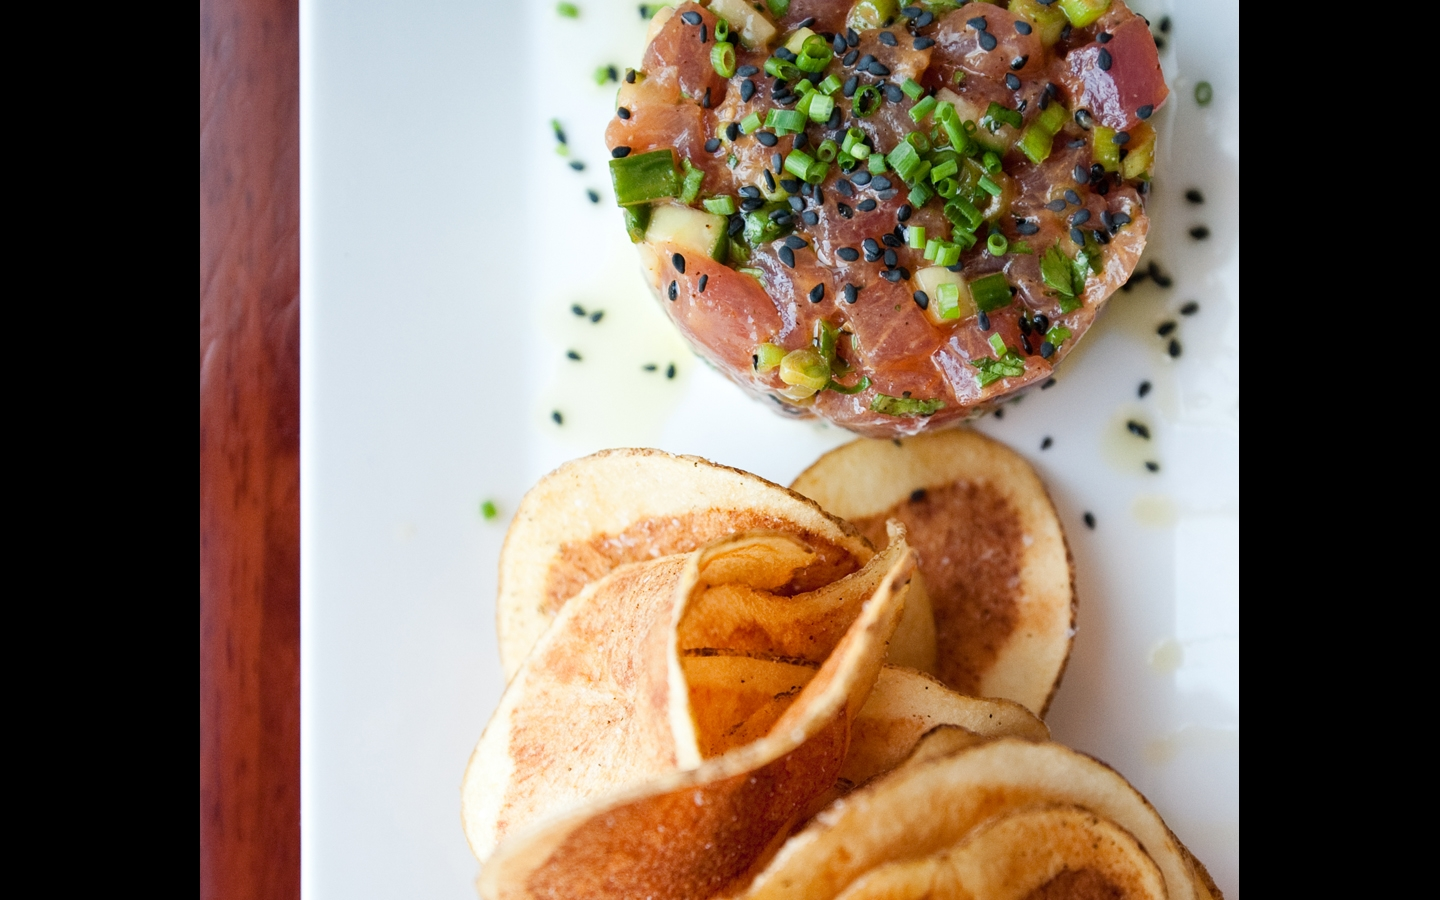 Food: Tuna tartar